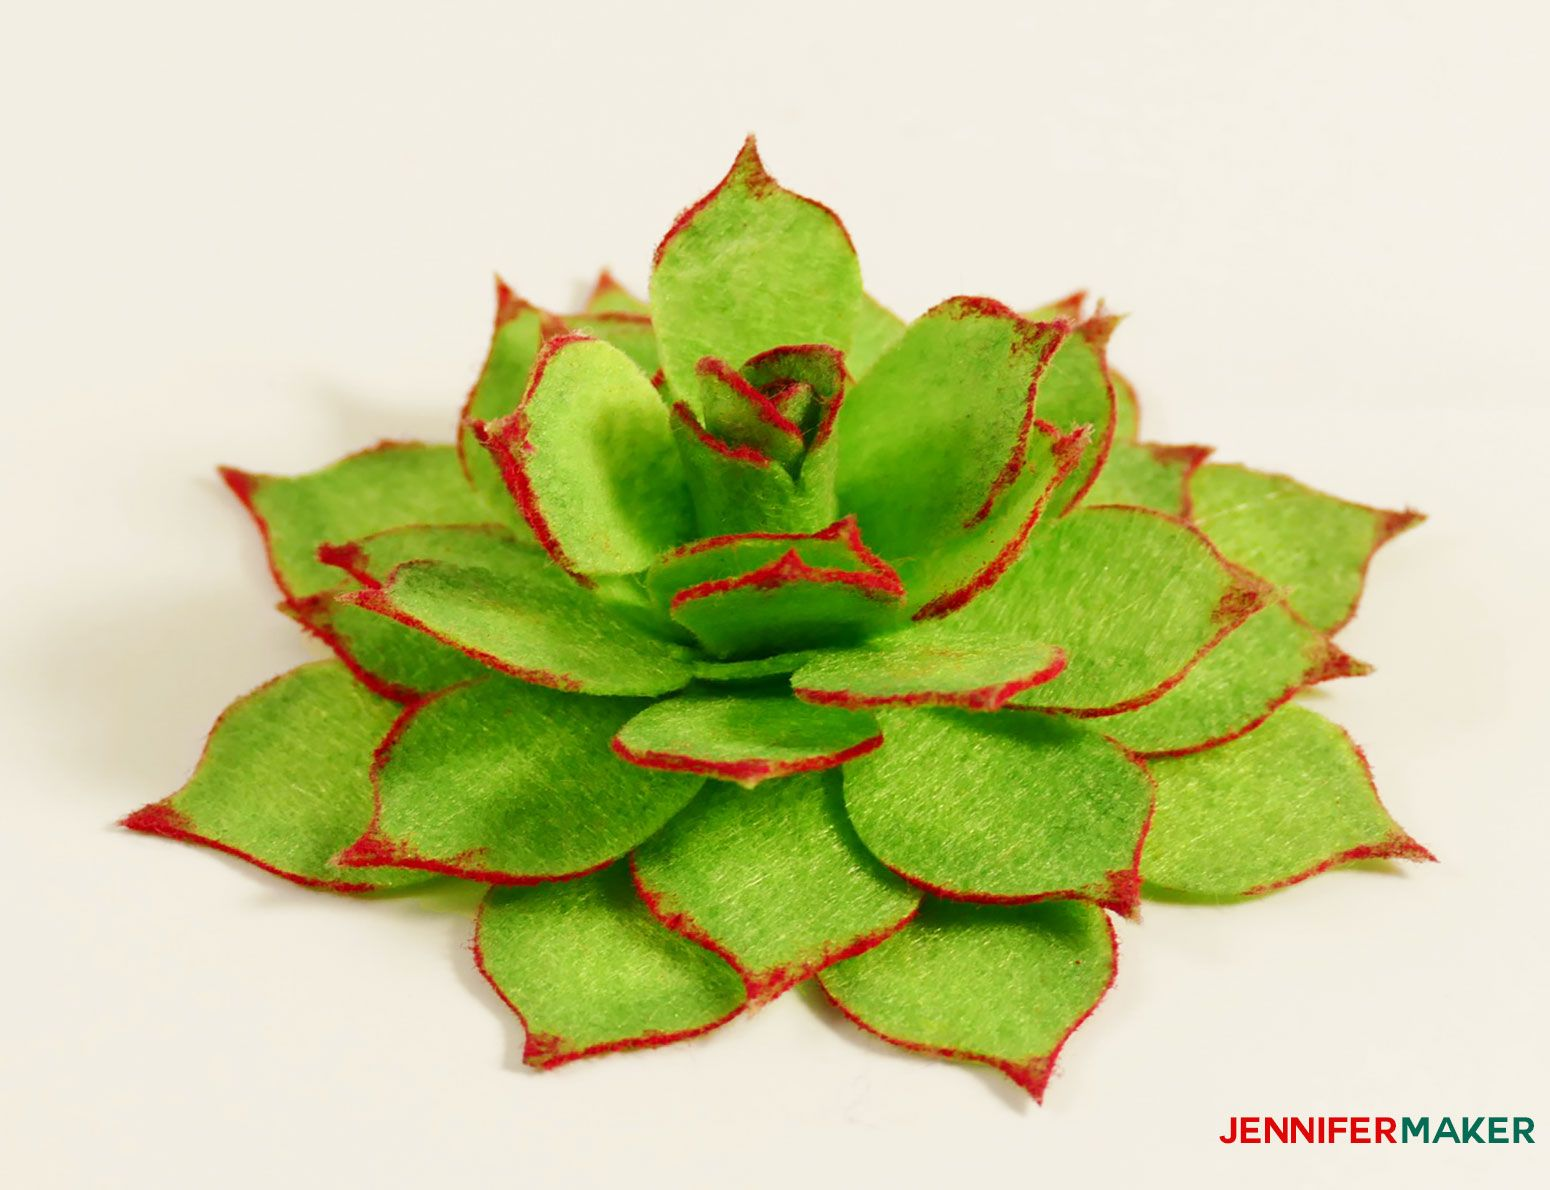 The finished felt succulent with red edges